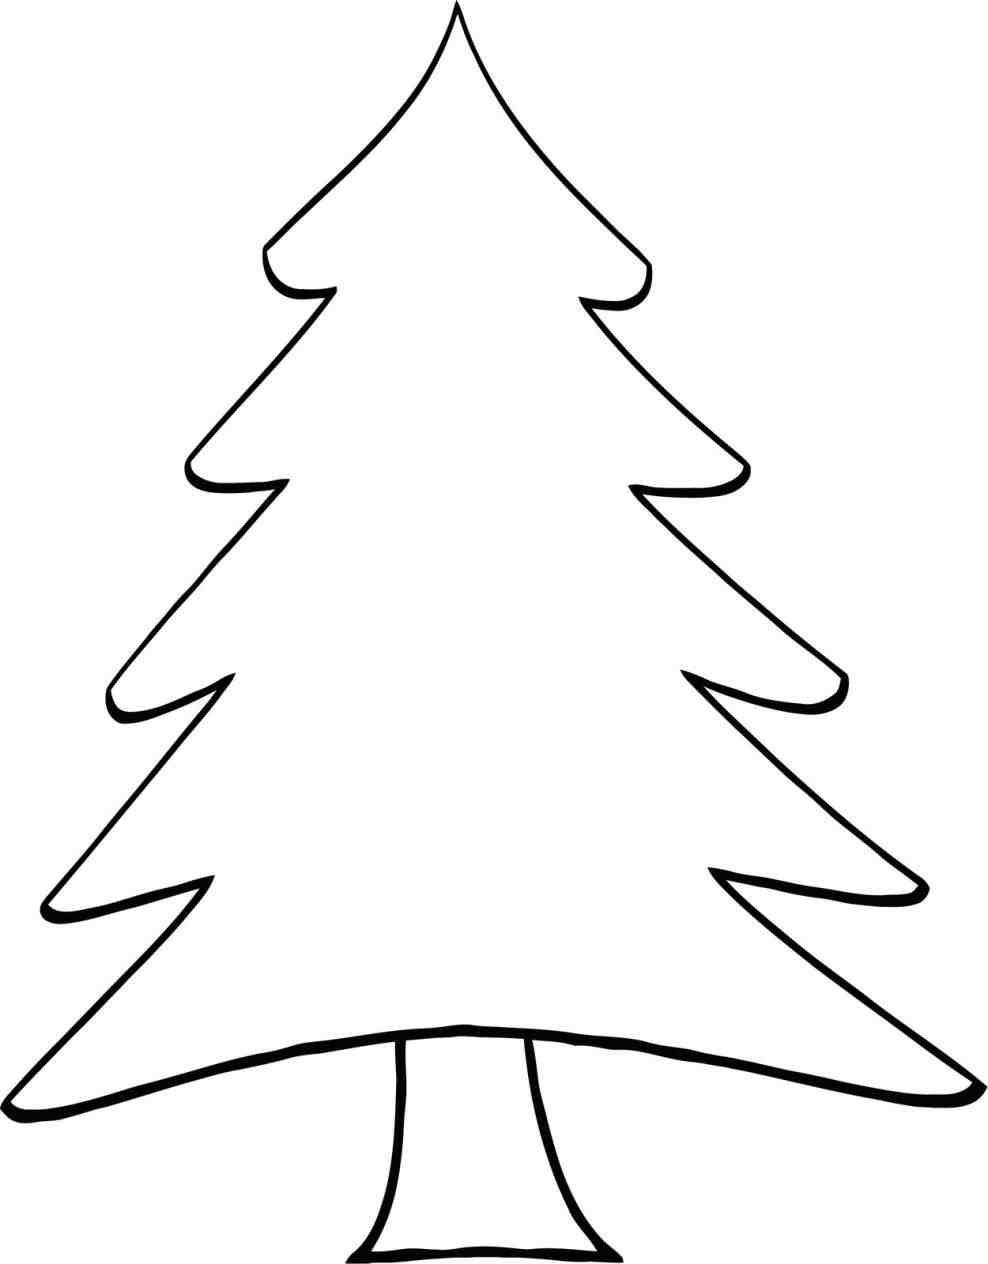 Tree Clipart Outline | Free download on ClipArtMag